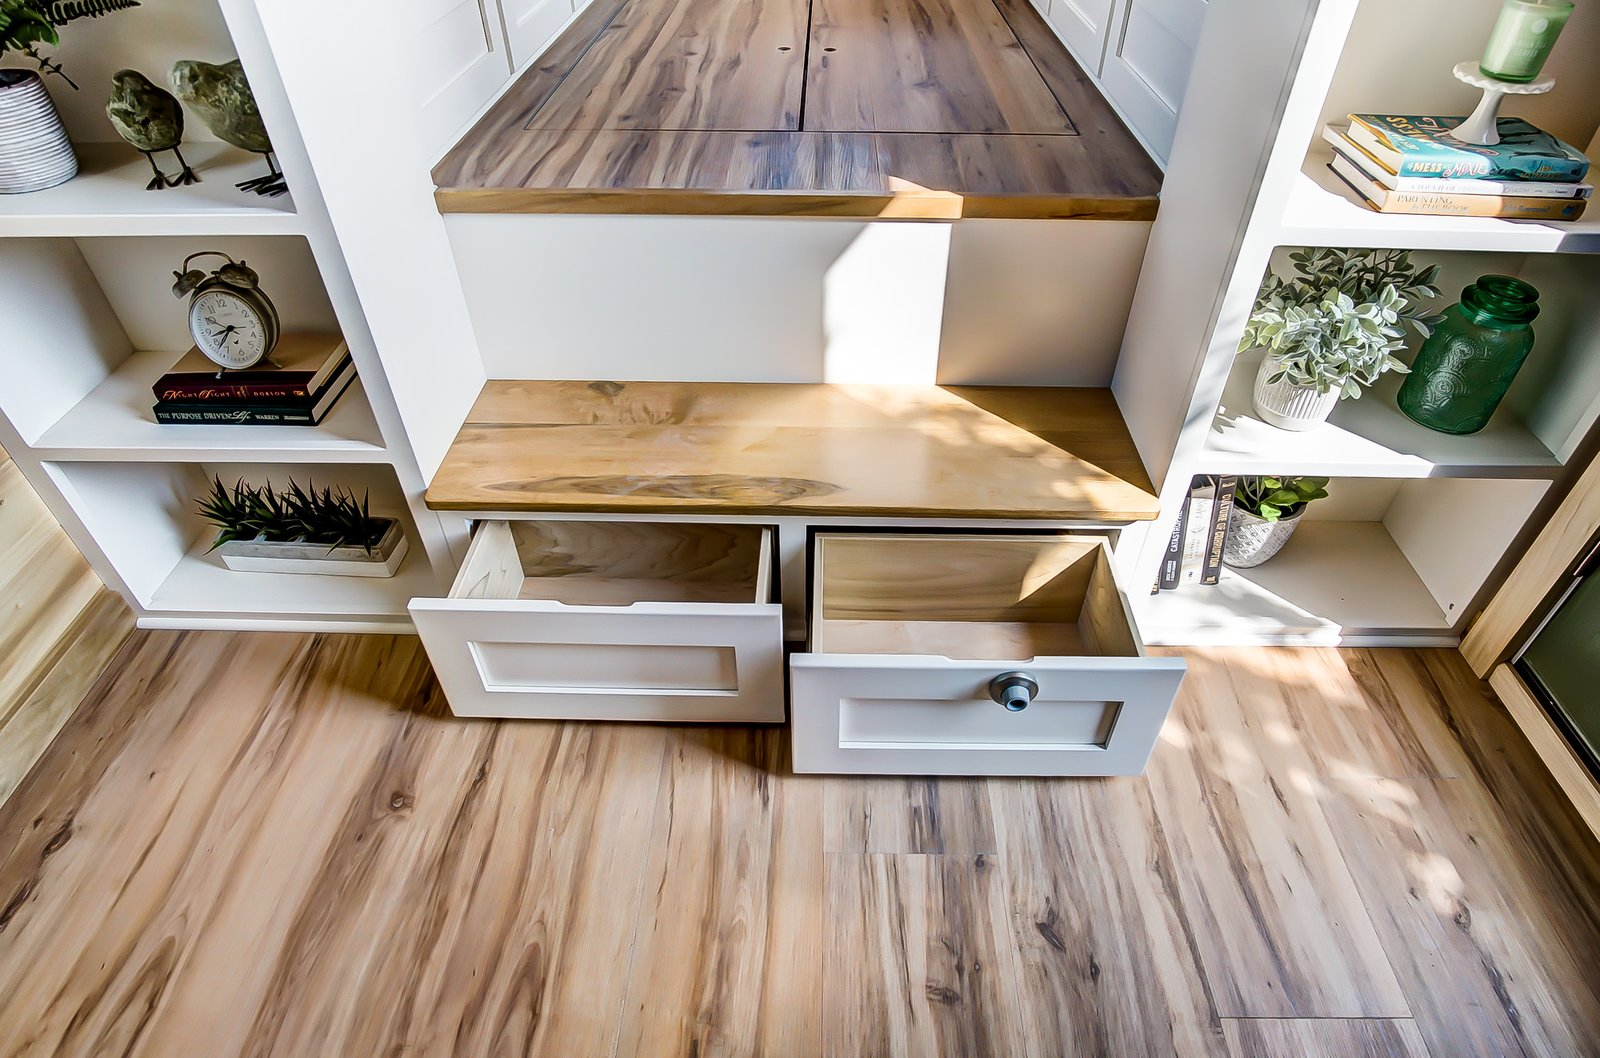 Storage Room and Under Stairs Storage Type The Clover is 24 feet long and is supported by a double-axle trailer. Featuring a steel roof, its exterior is clad in lapped smart siding.    Photo 4 of 11 in This 270-Square-Foot Tiny Home Is Now Up For Grabs at $89K